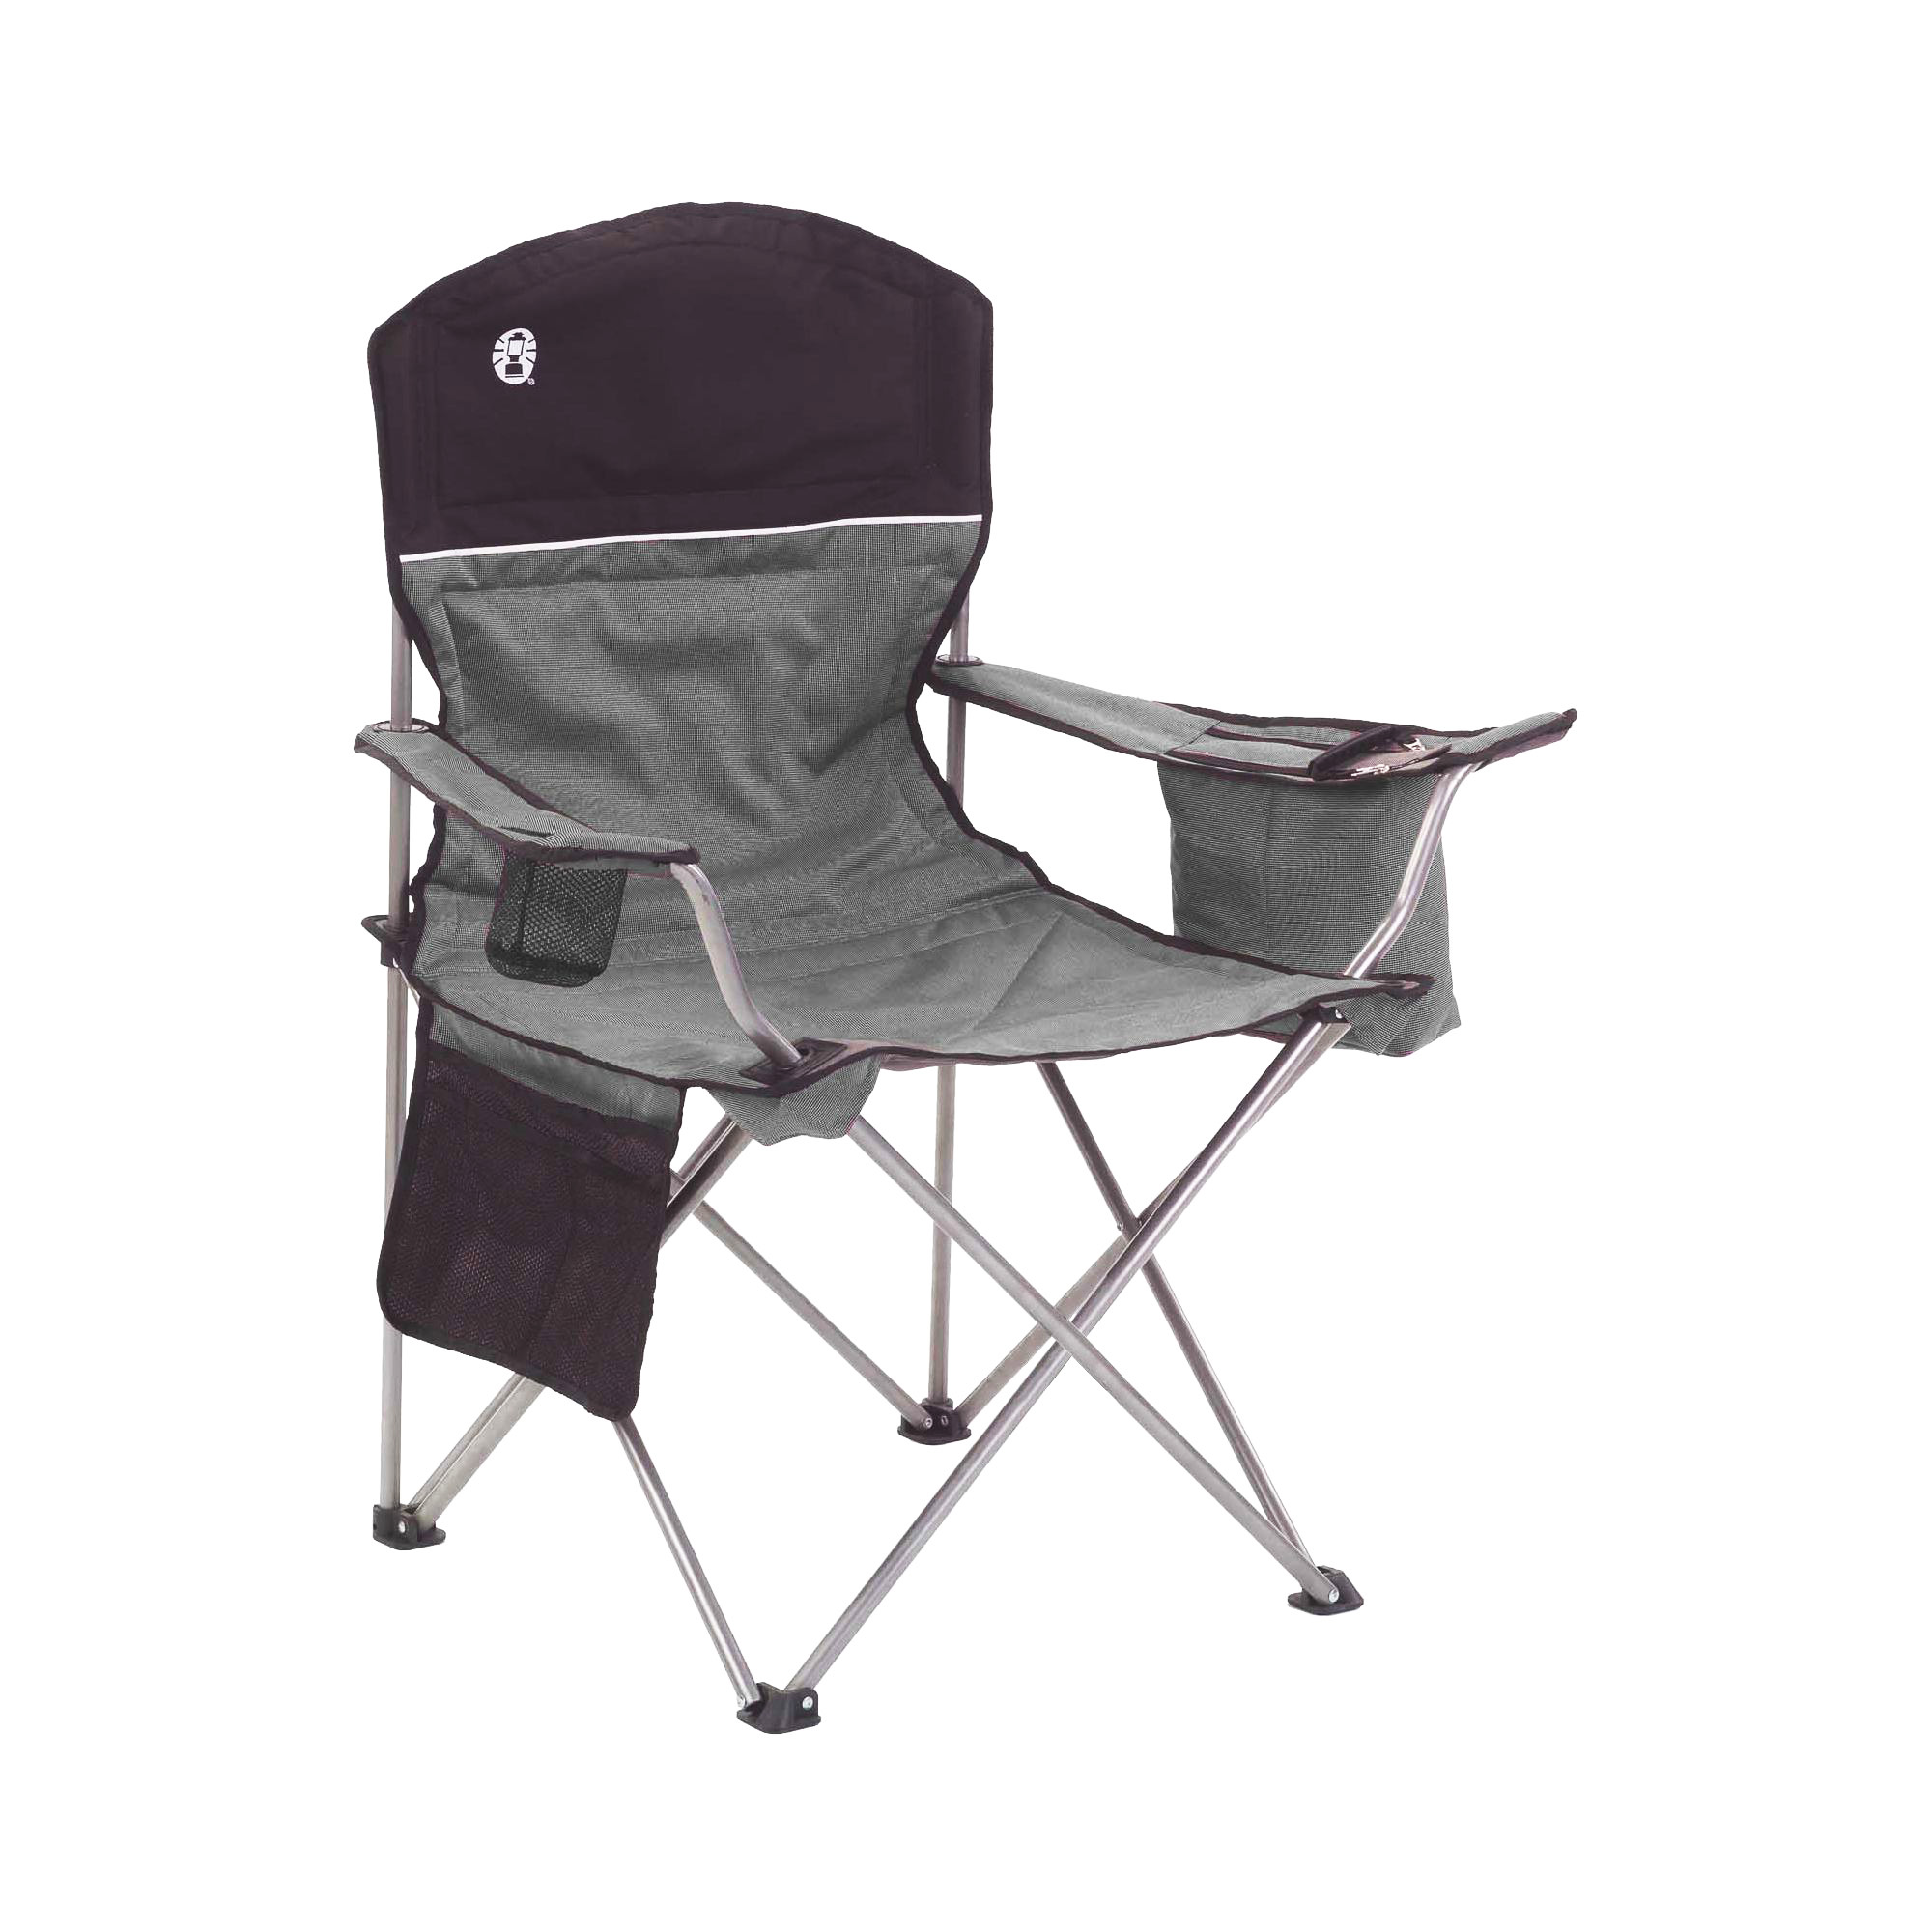 Coleman Oversized Black Camping Lawn Chairs Cooler 2 Pack 2000020256